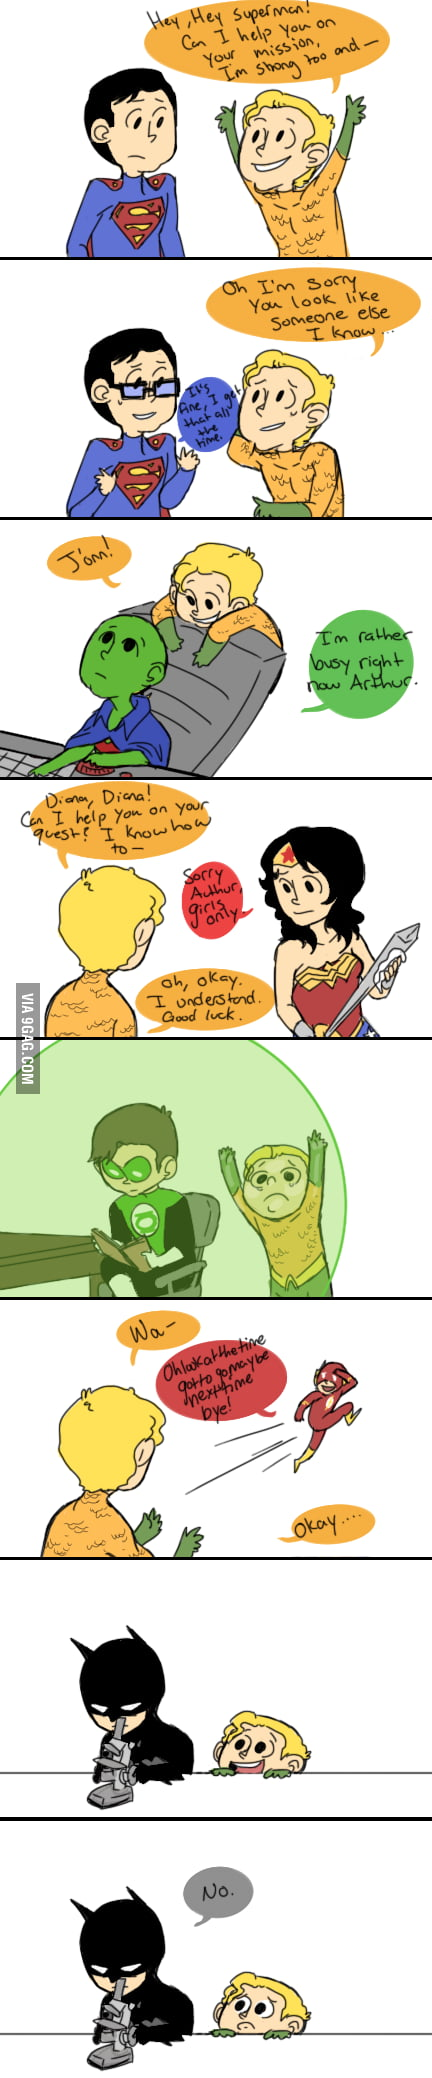 That one friend nobody likes - Poor Aquaman